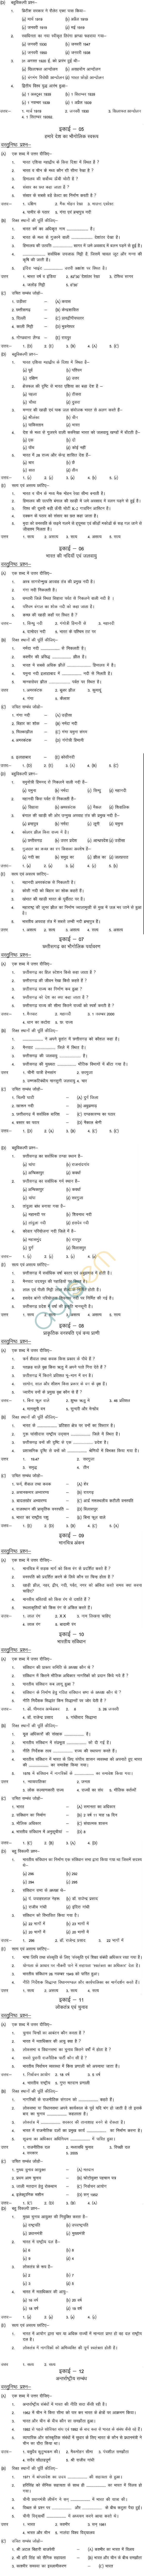 Chhattisgarh Board Class 09 Question Bank - Social Science